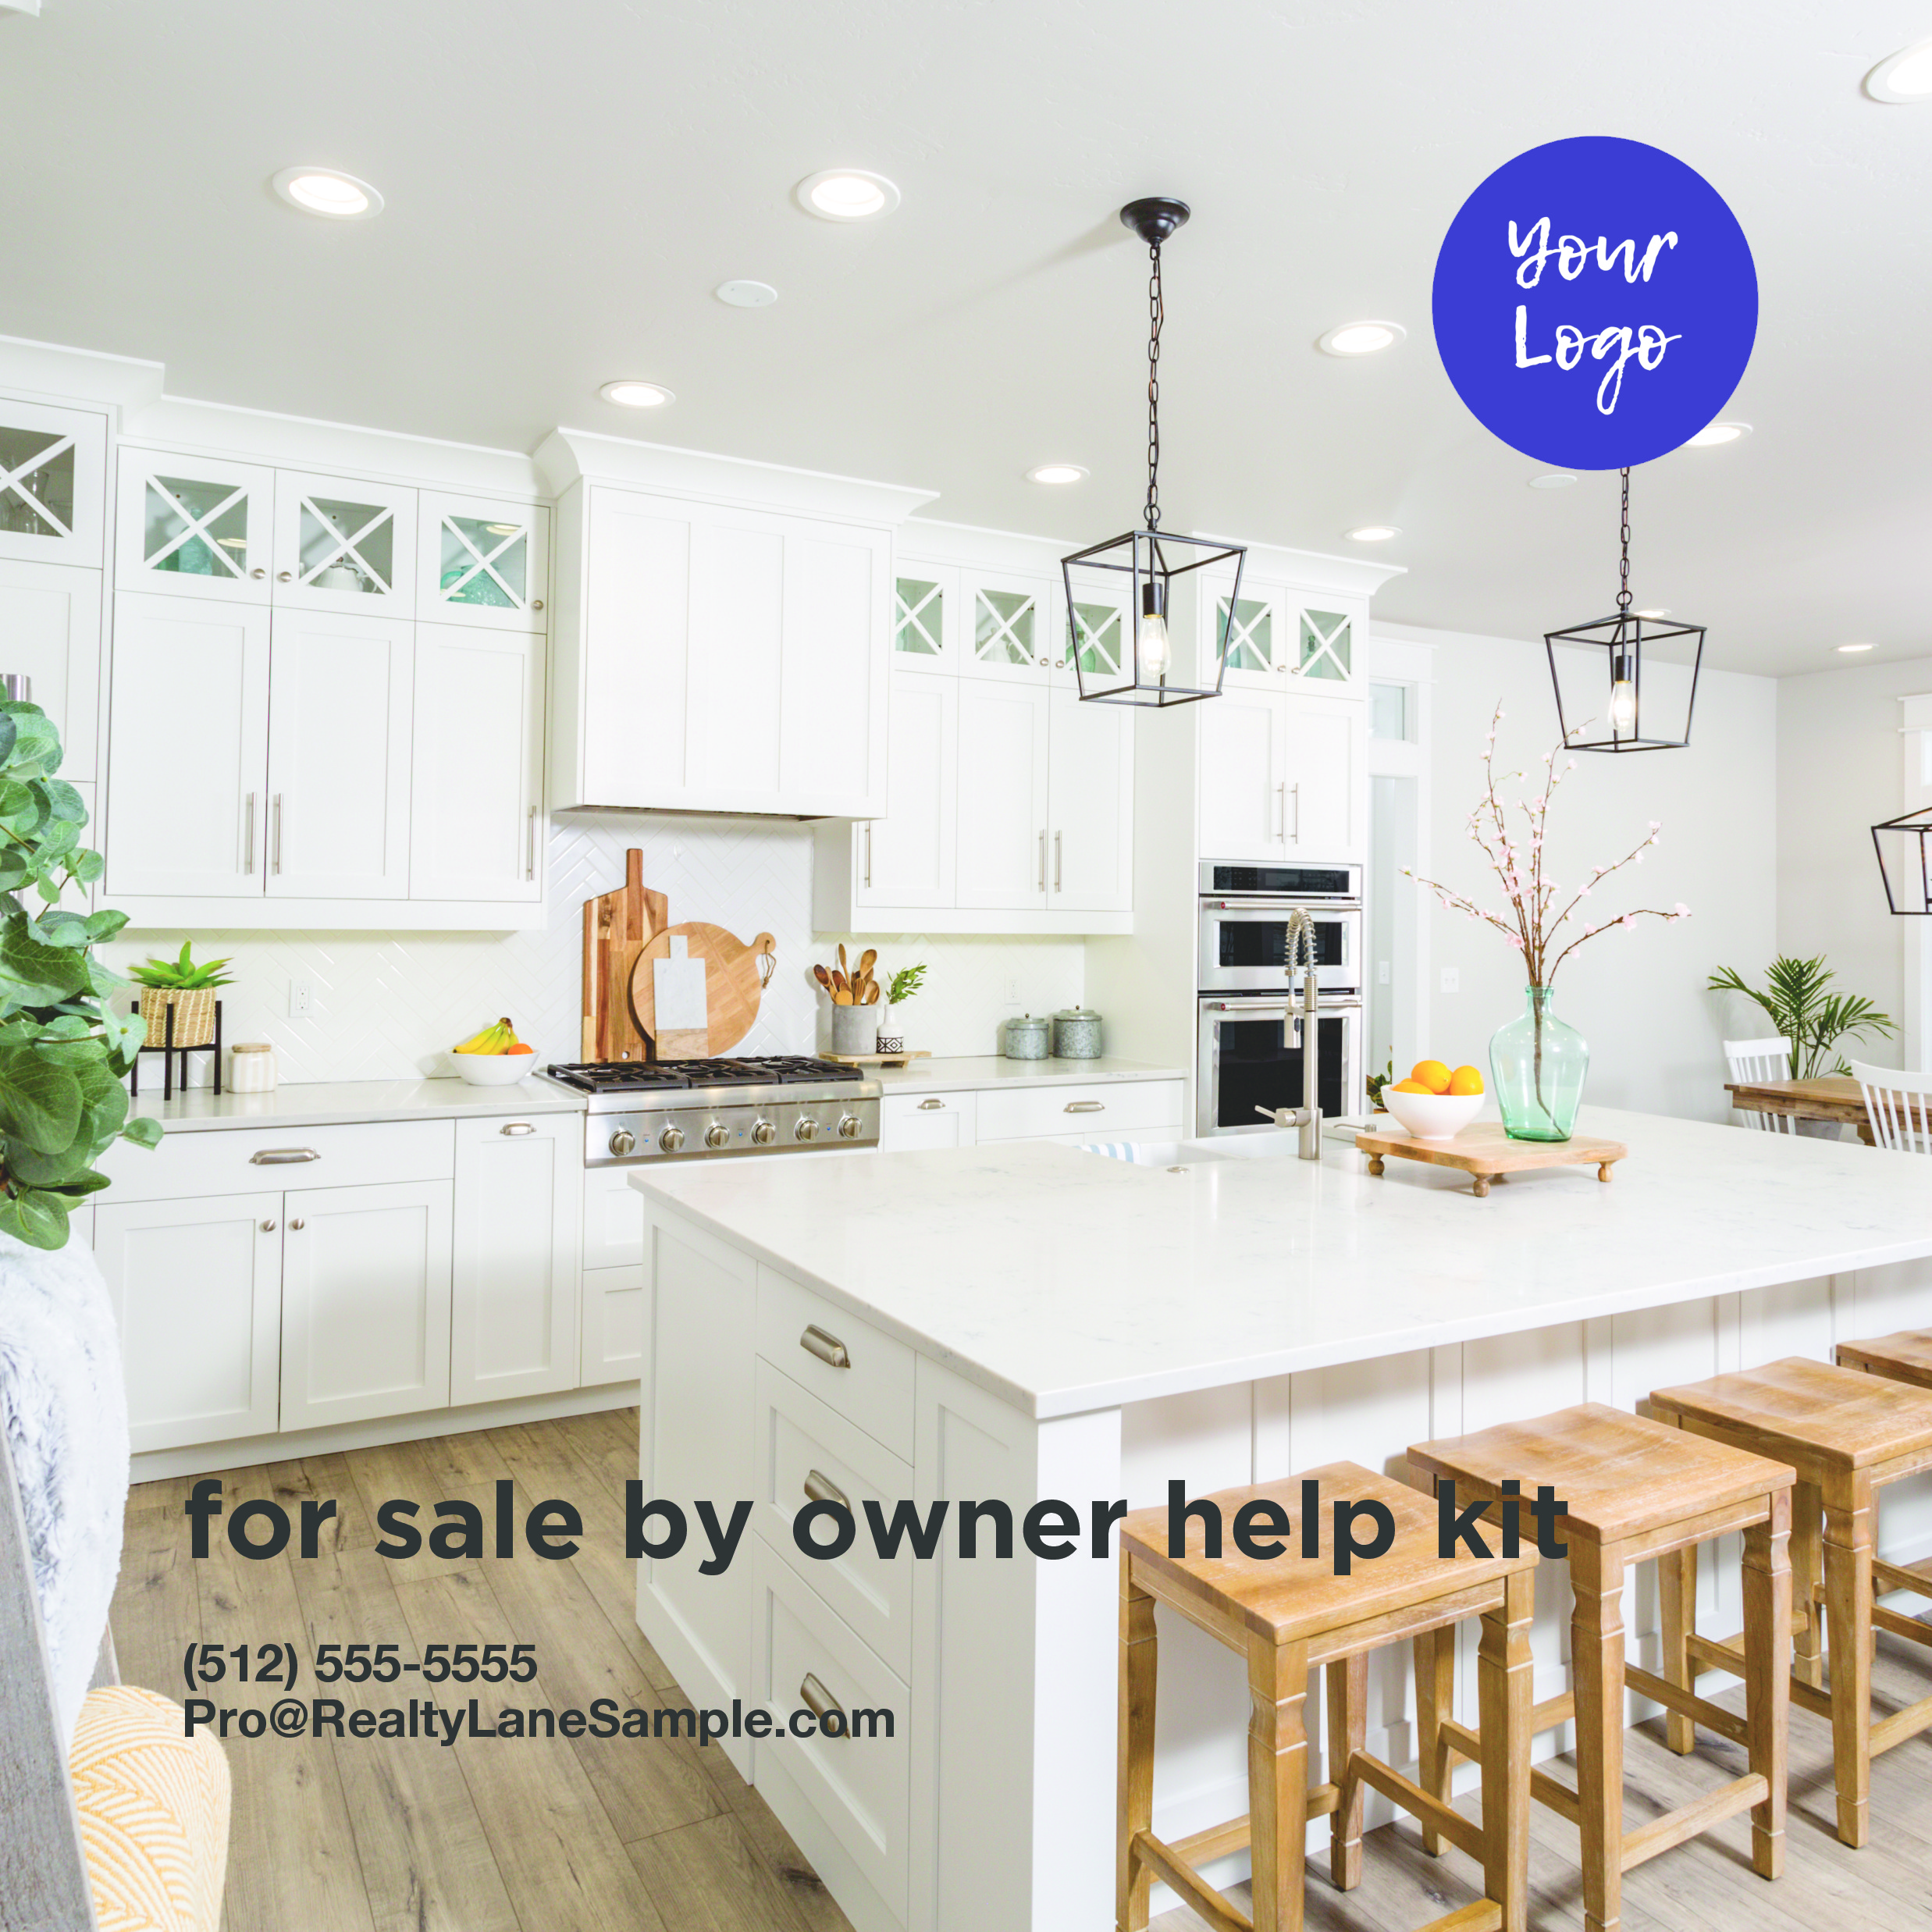 For Sale By Owner Help Kit, FSBO Guide, FSBO prospecting, FSBO leads, FSBO Package Agent Operations real estate marketing ideas